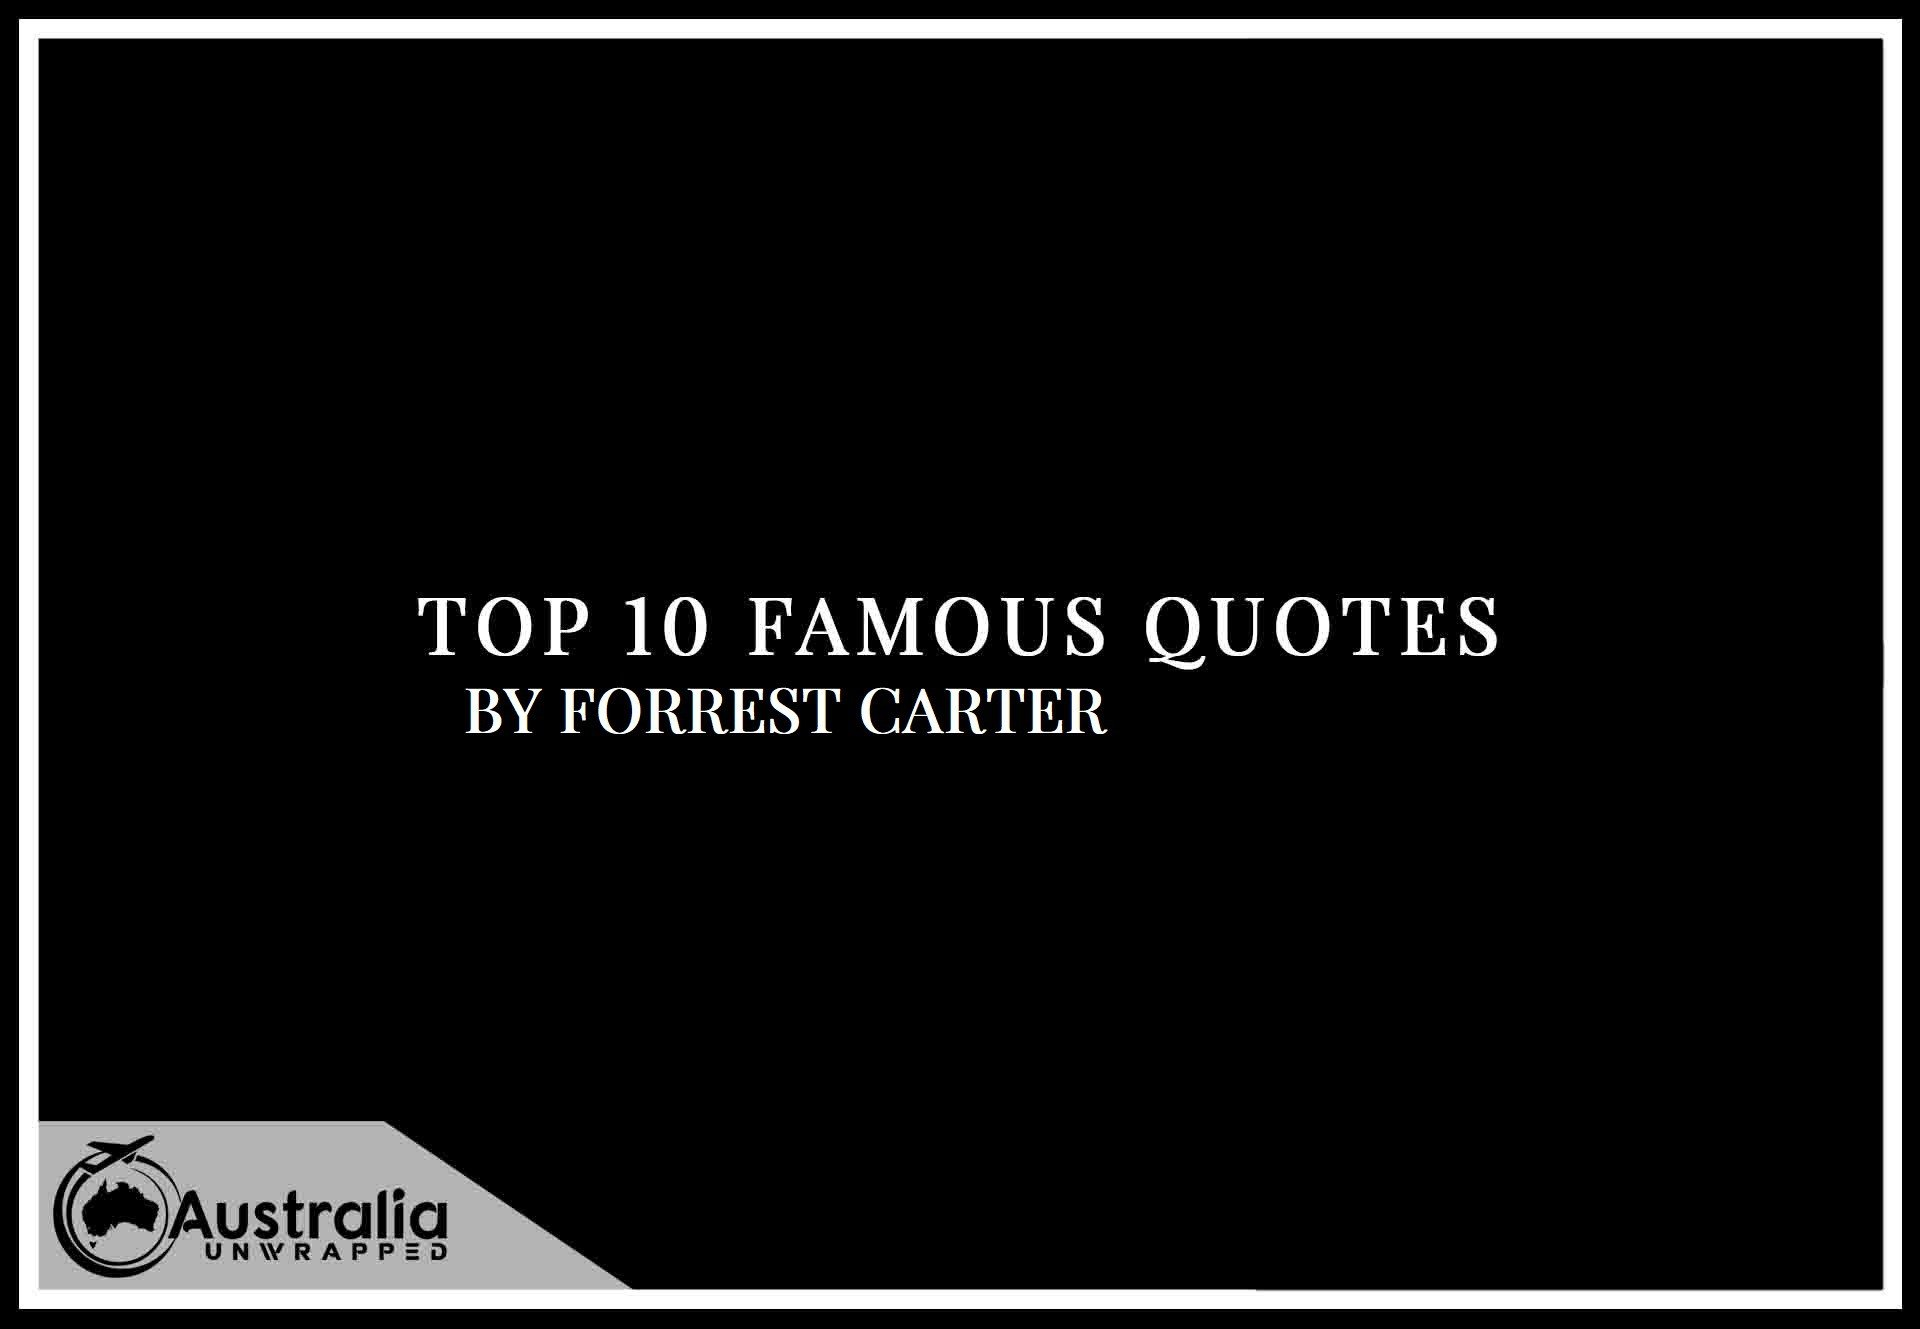 Top 10 Famous Quotes by Author Forrest Carter